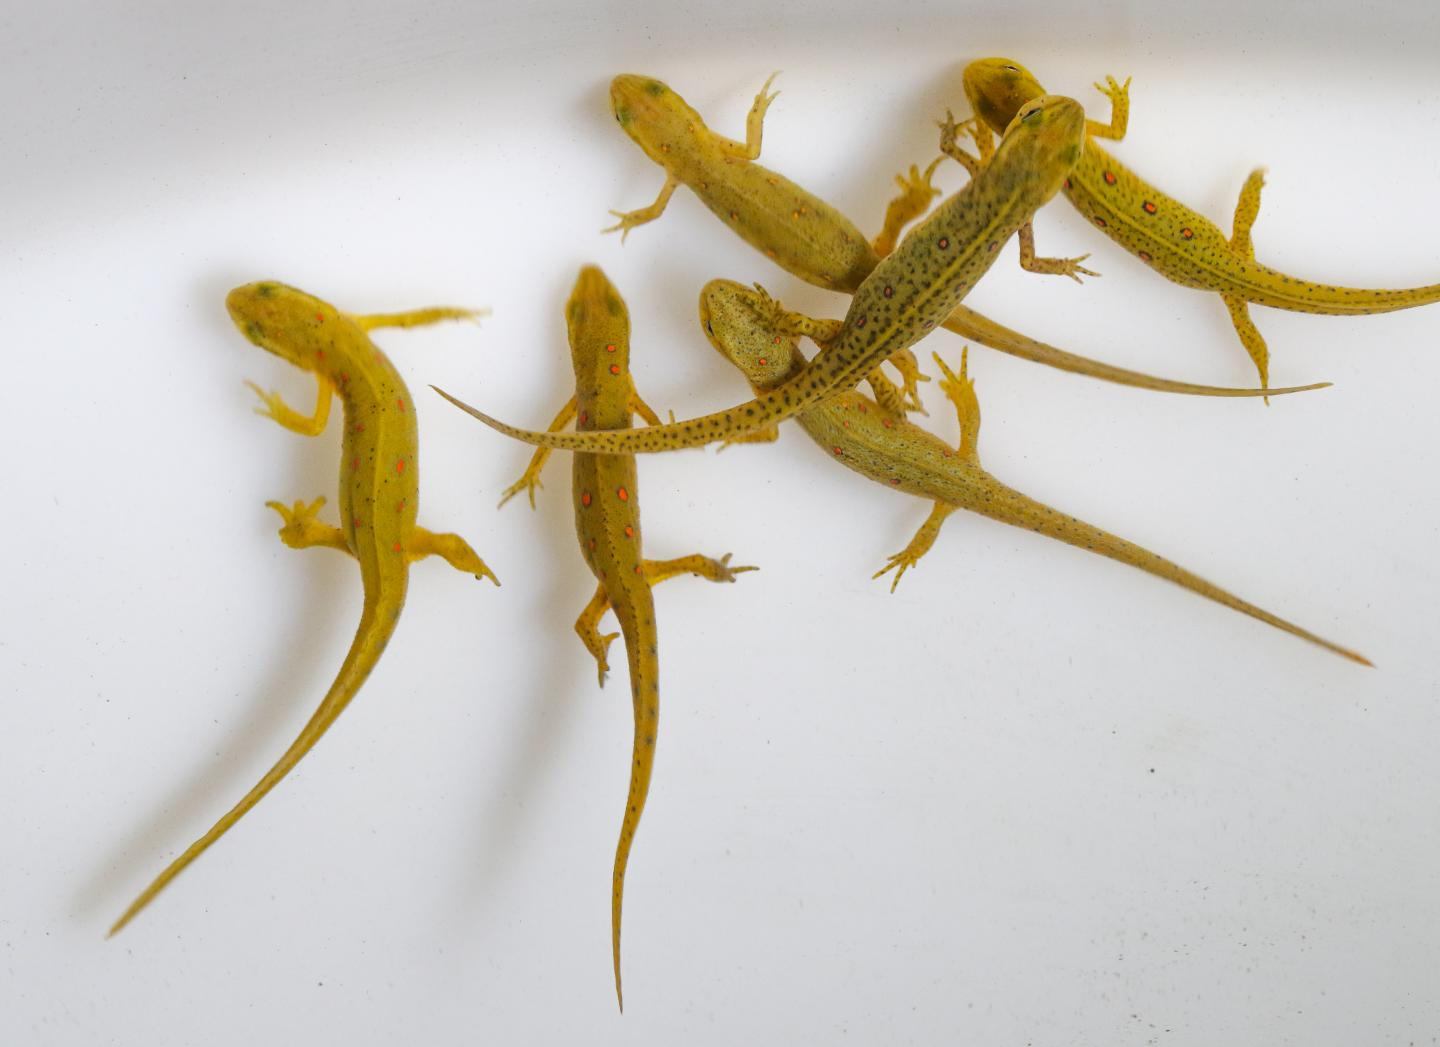 Eastern Newts in Close Proximity in Captivity